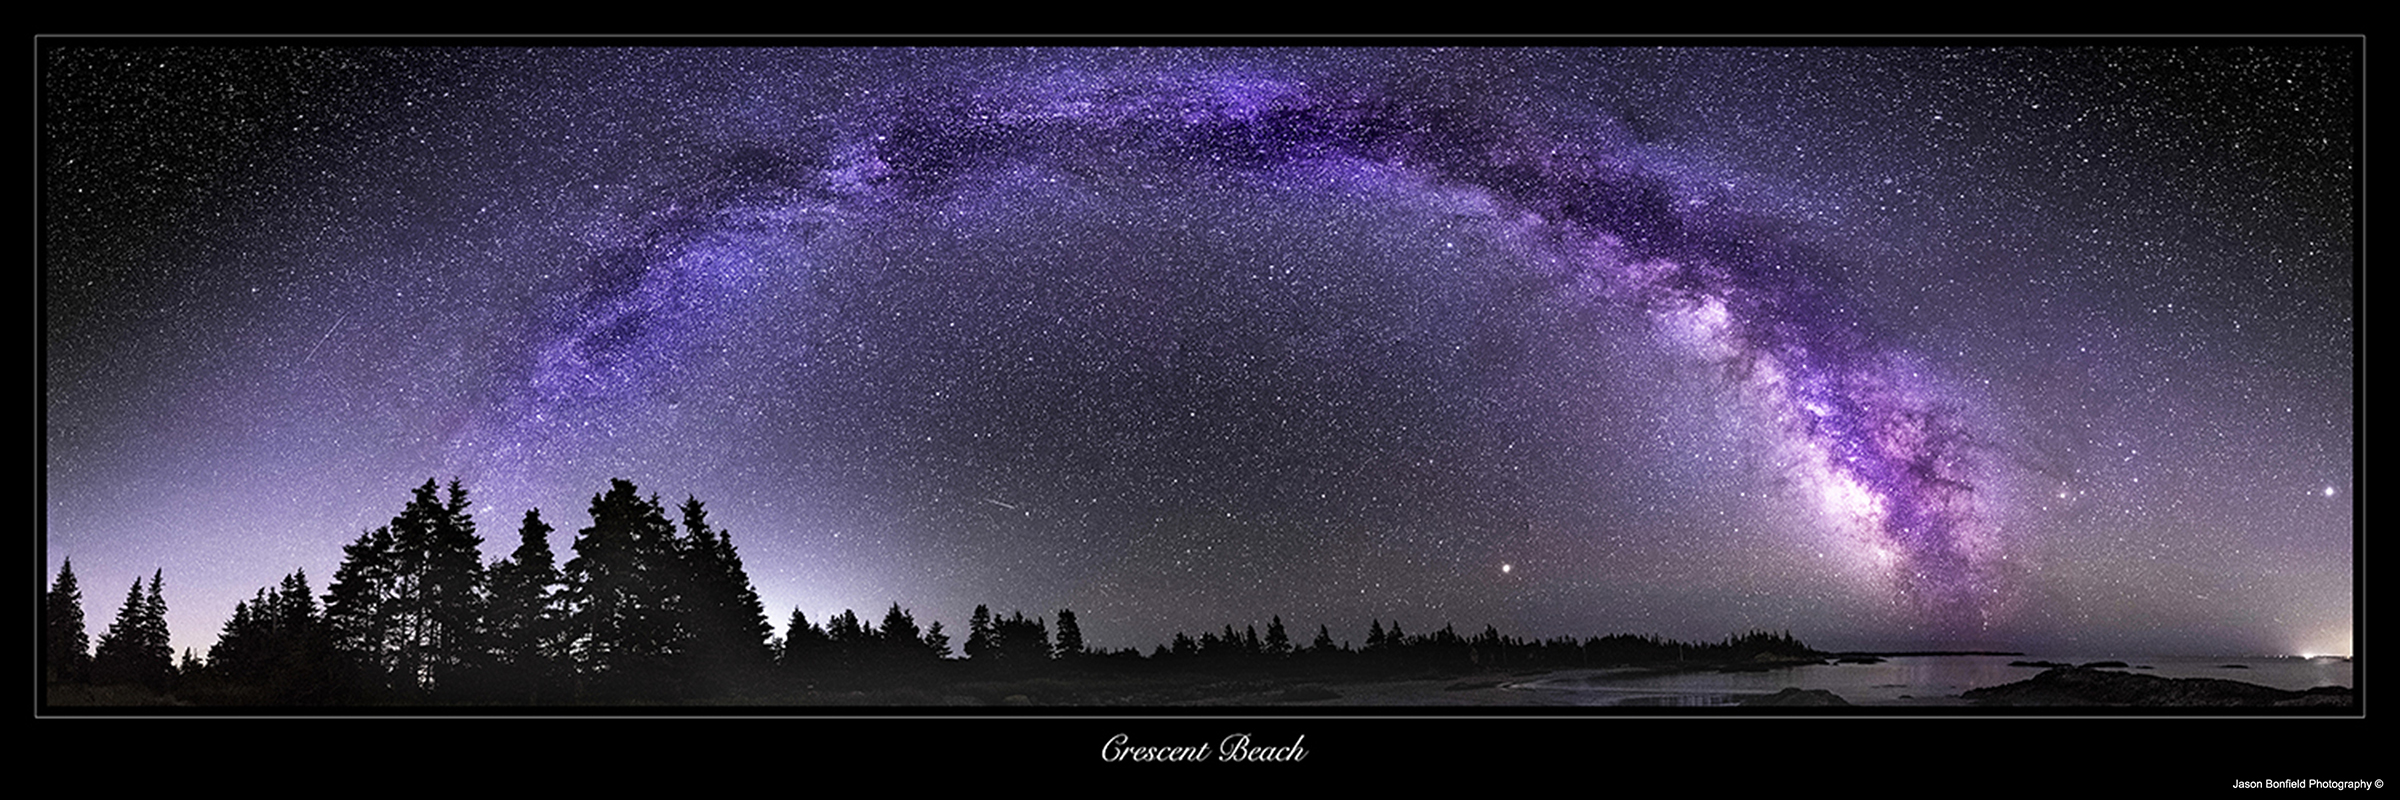 Panoramic nighttime landscape picture of the Milky Way galaxy over Crescent Beach in Nova Scotia, Canada.